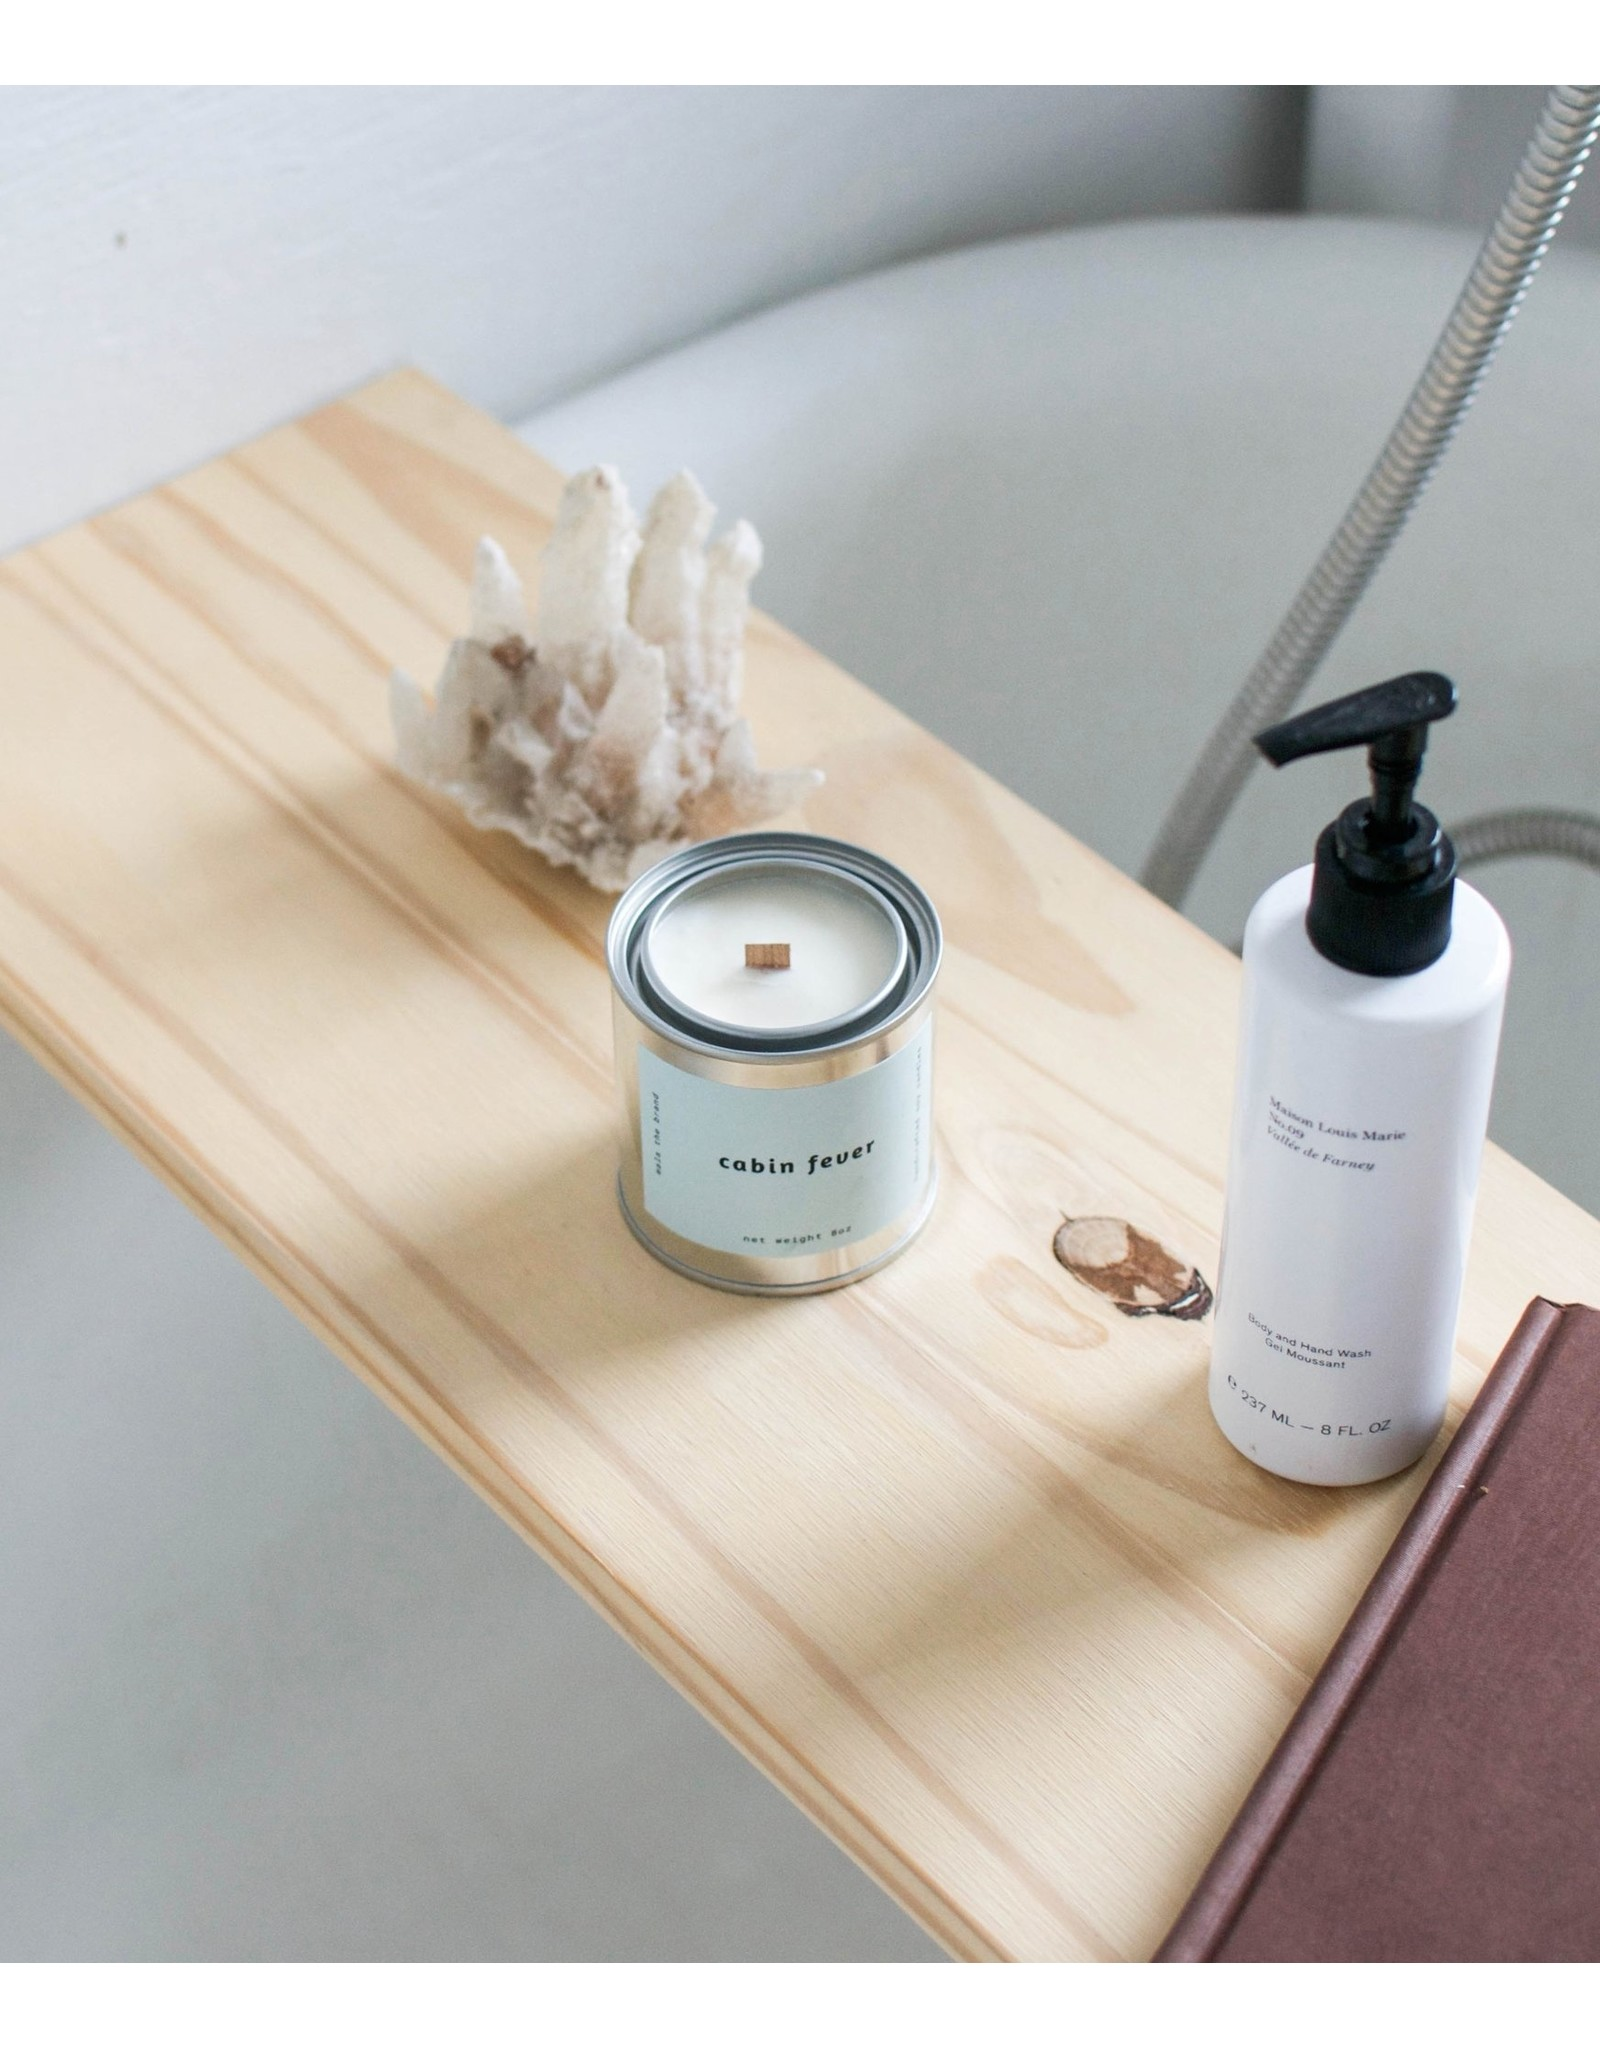 Mala The Brand Cabin Fever Candle / Cypress + Evergreen + Moss